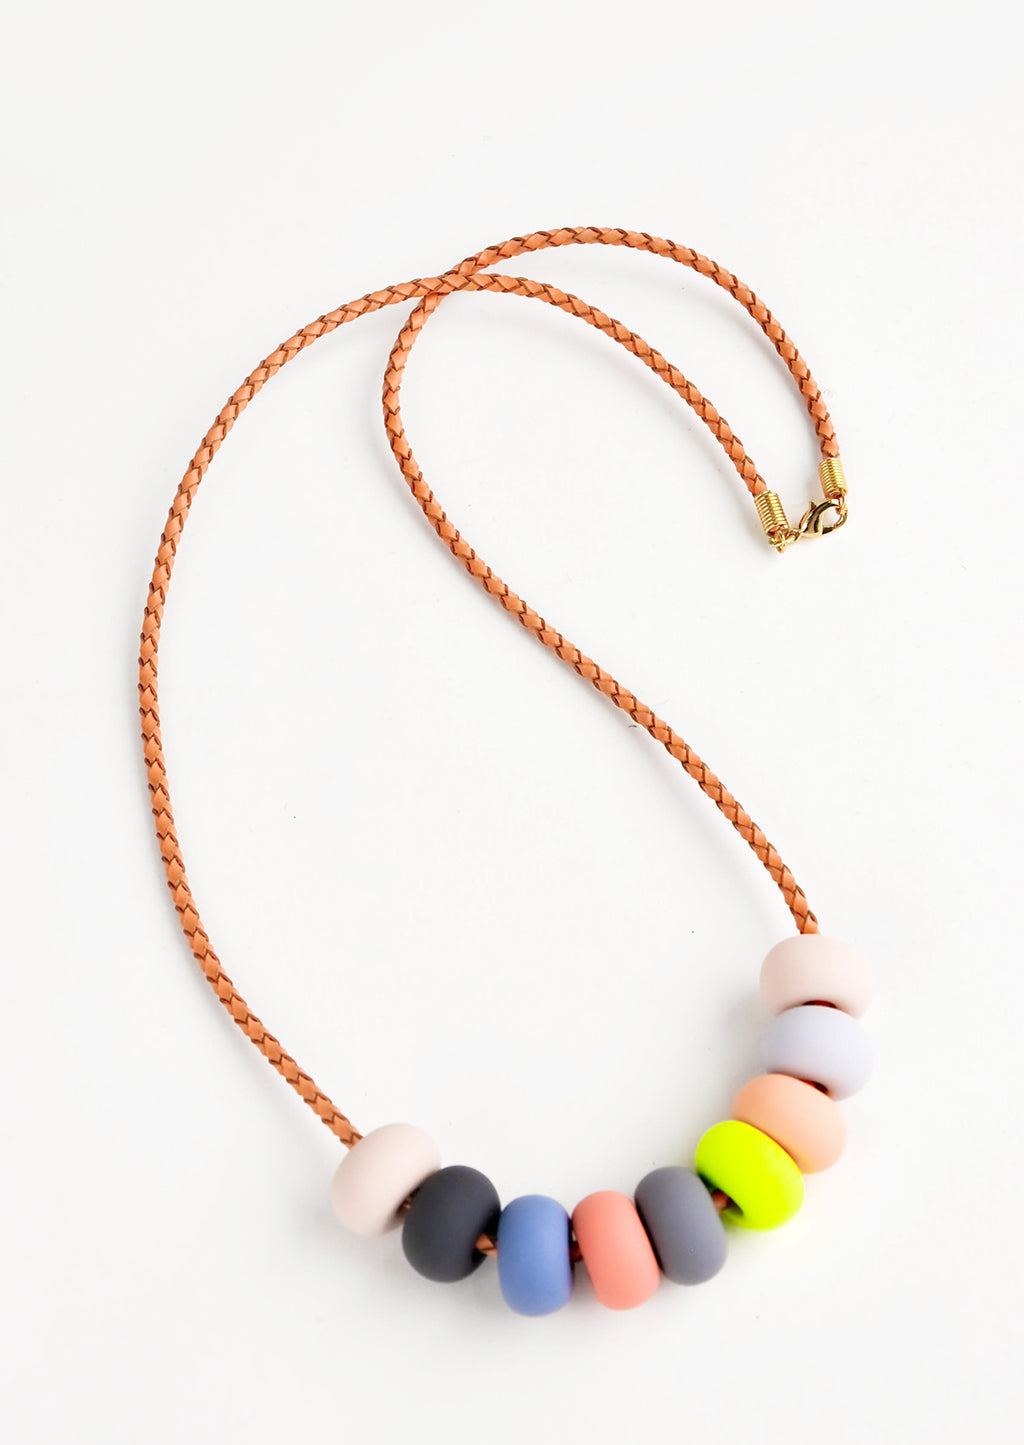 Cool Glow: Woven leather cord necklace with gold clasp and rounded clay beads tans, pinks,gray, blue, and neon yellow.